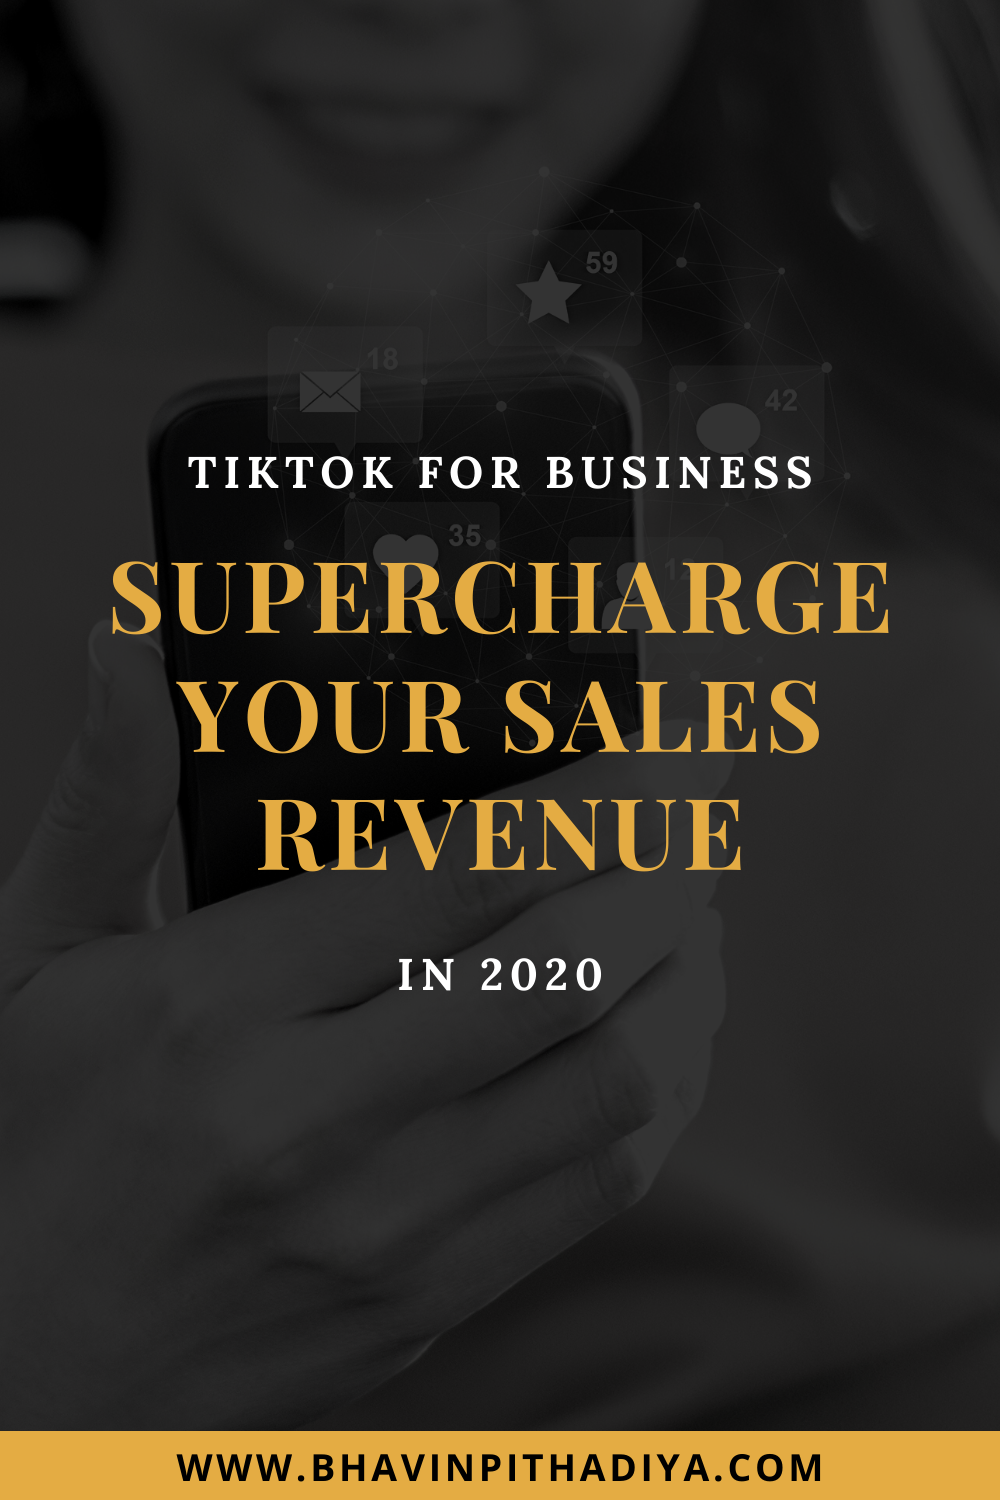 Tiktok For Business Business Small Business Marketing Business Person